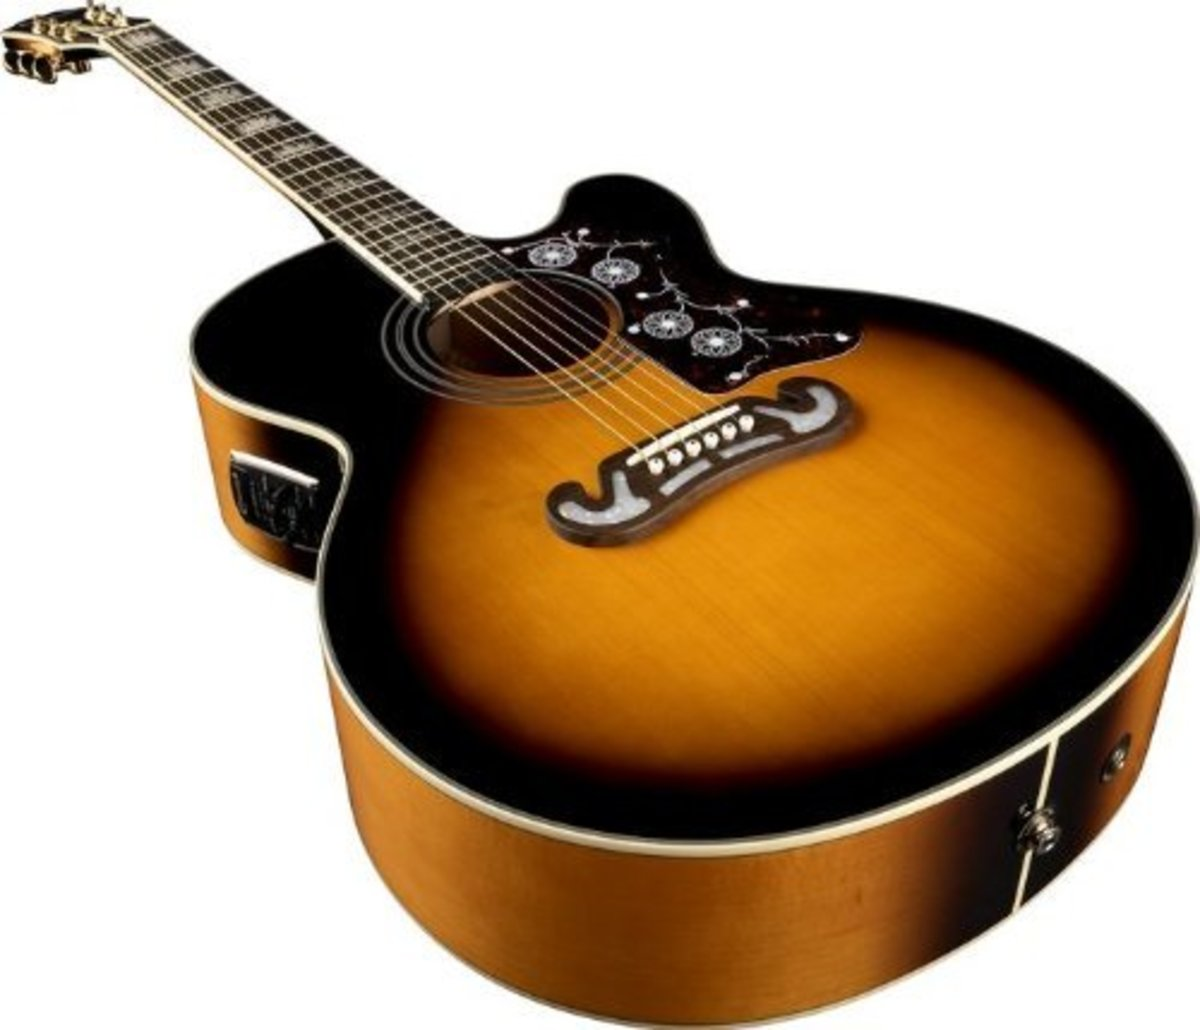 The Epiphone EJ-200CE is one of the best acoustic-electric guitars under $500.